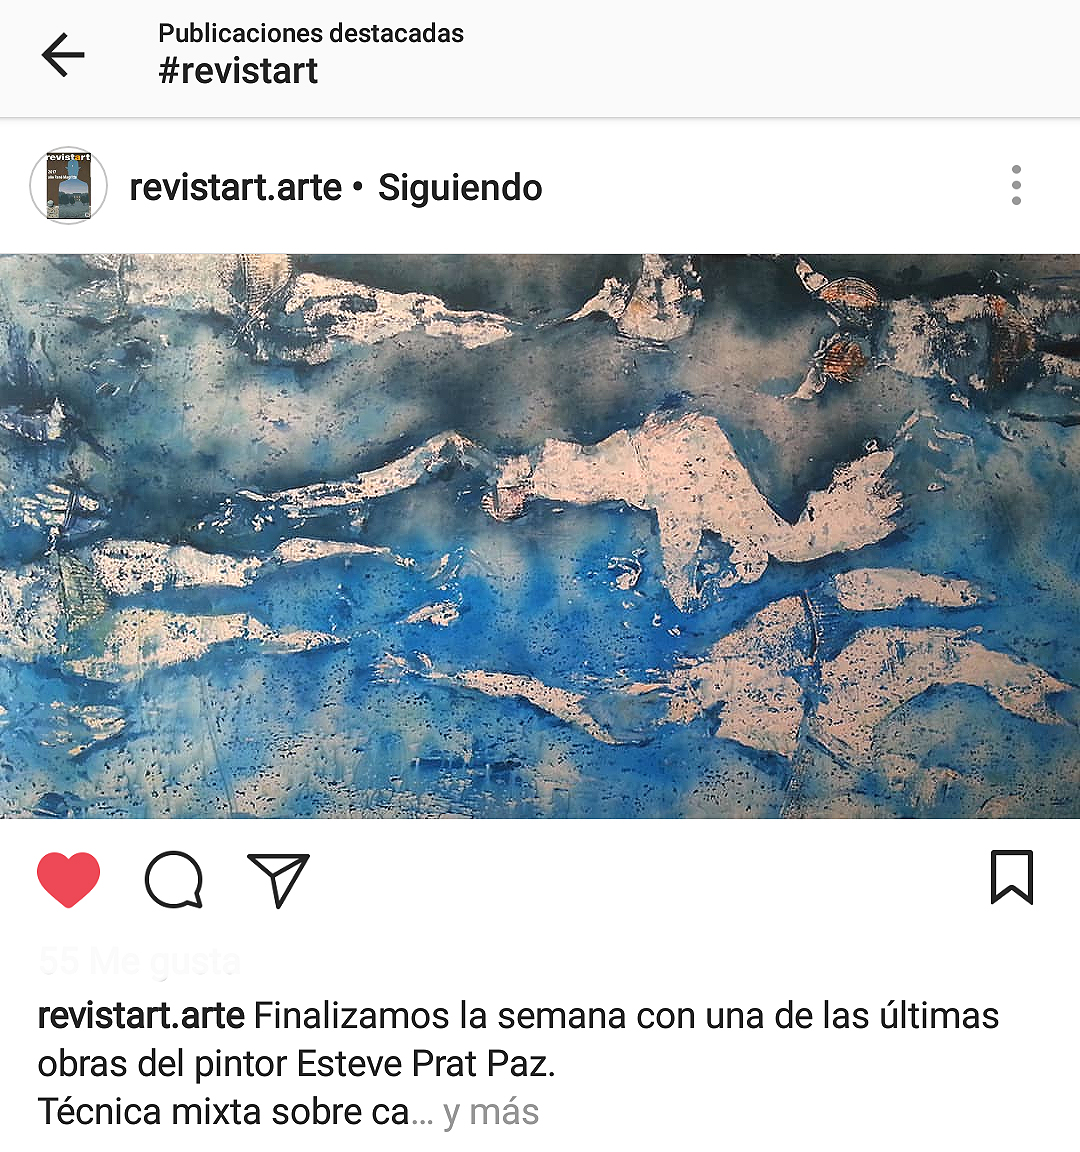 https://esteveprat.cat/wp-content/uploads/32-Instagram-revistart.arte-08-12-2017.jpg